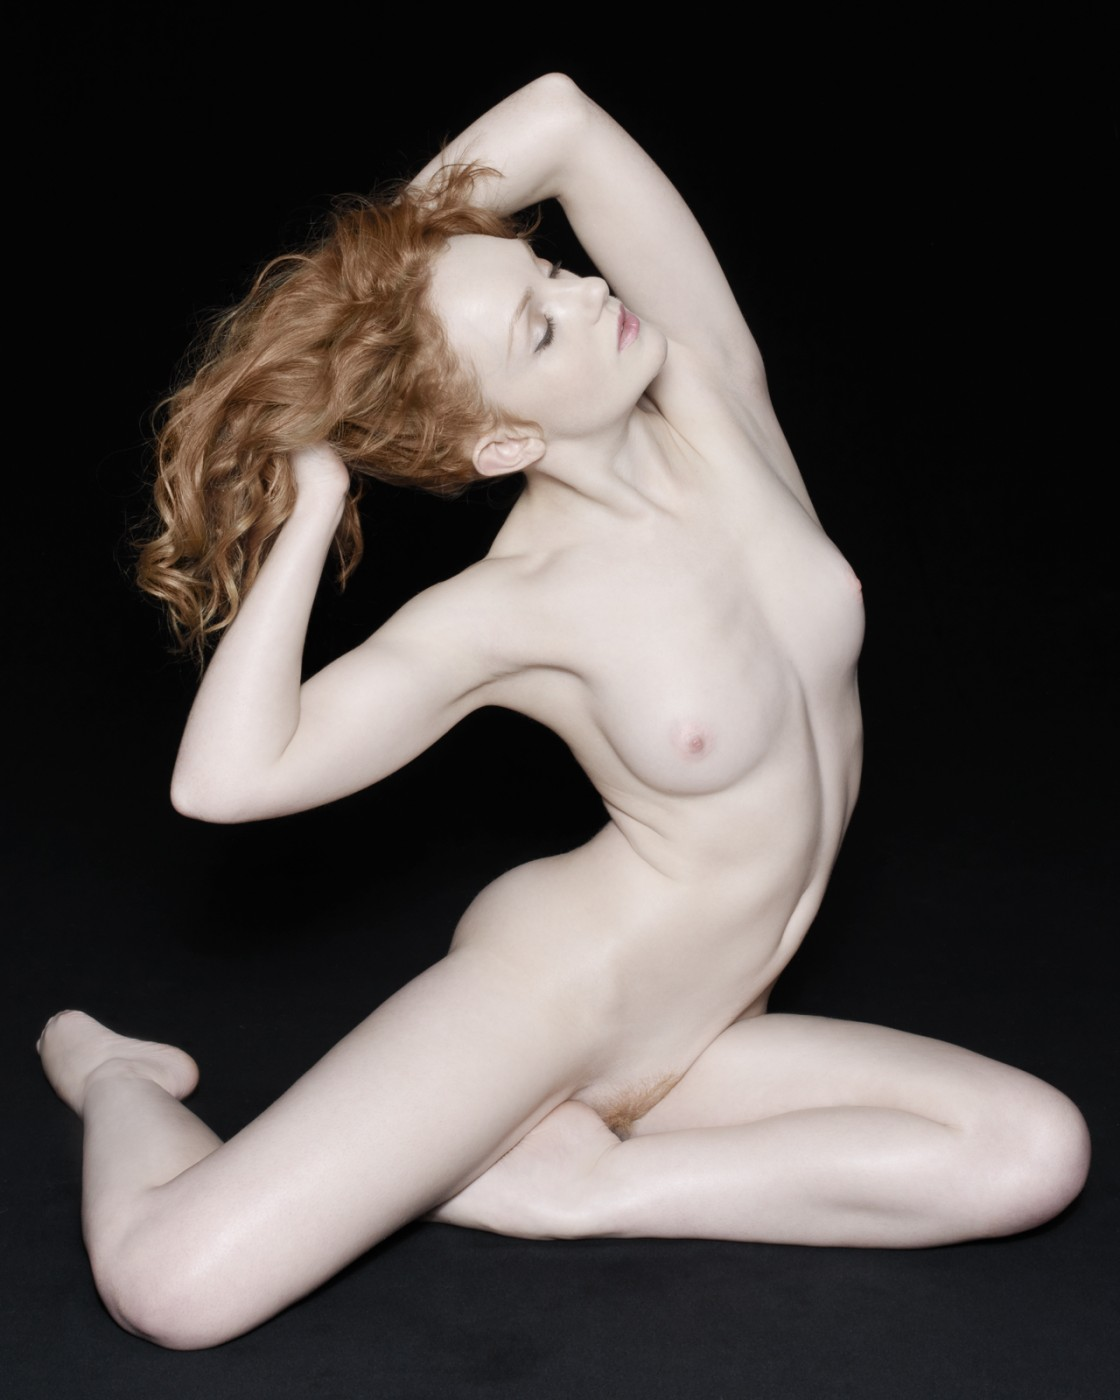 Sample poses for implied nude